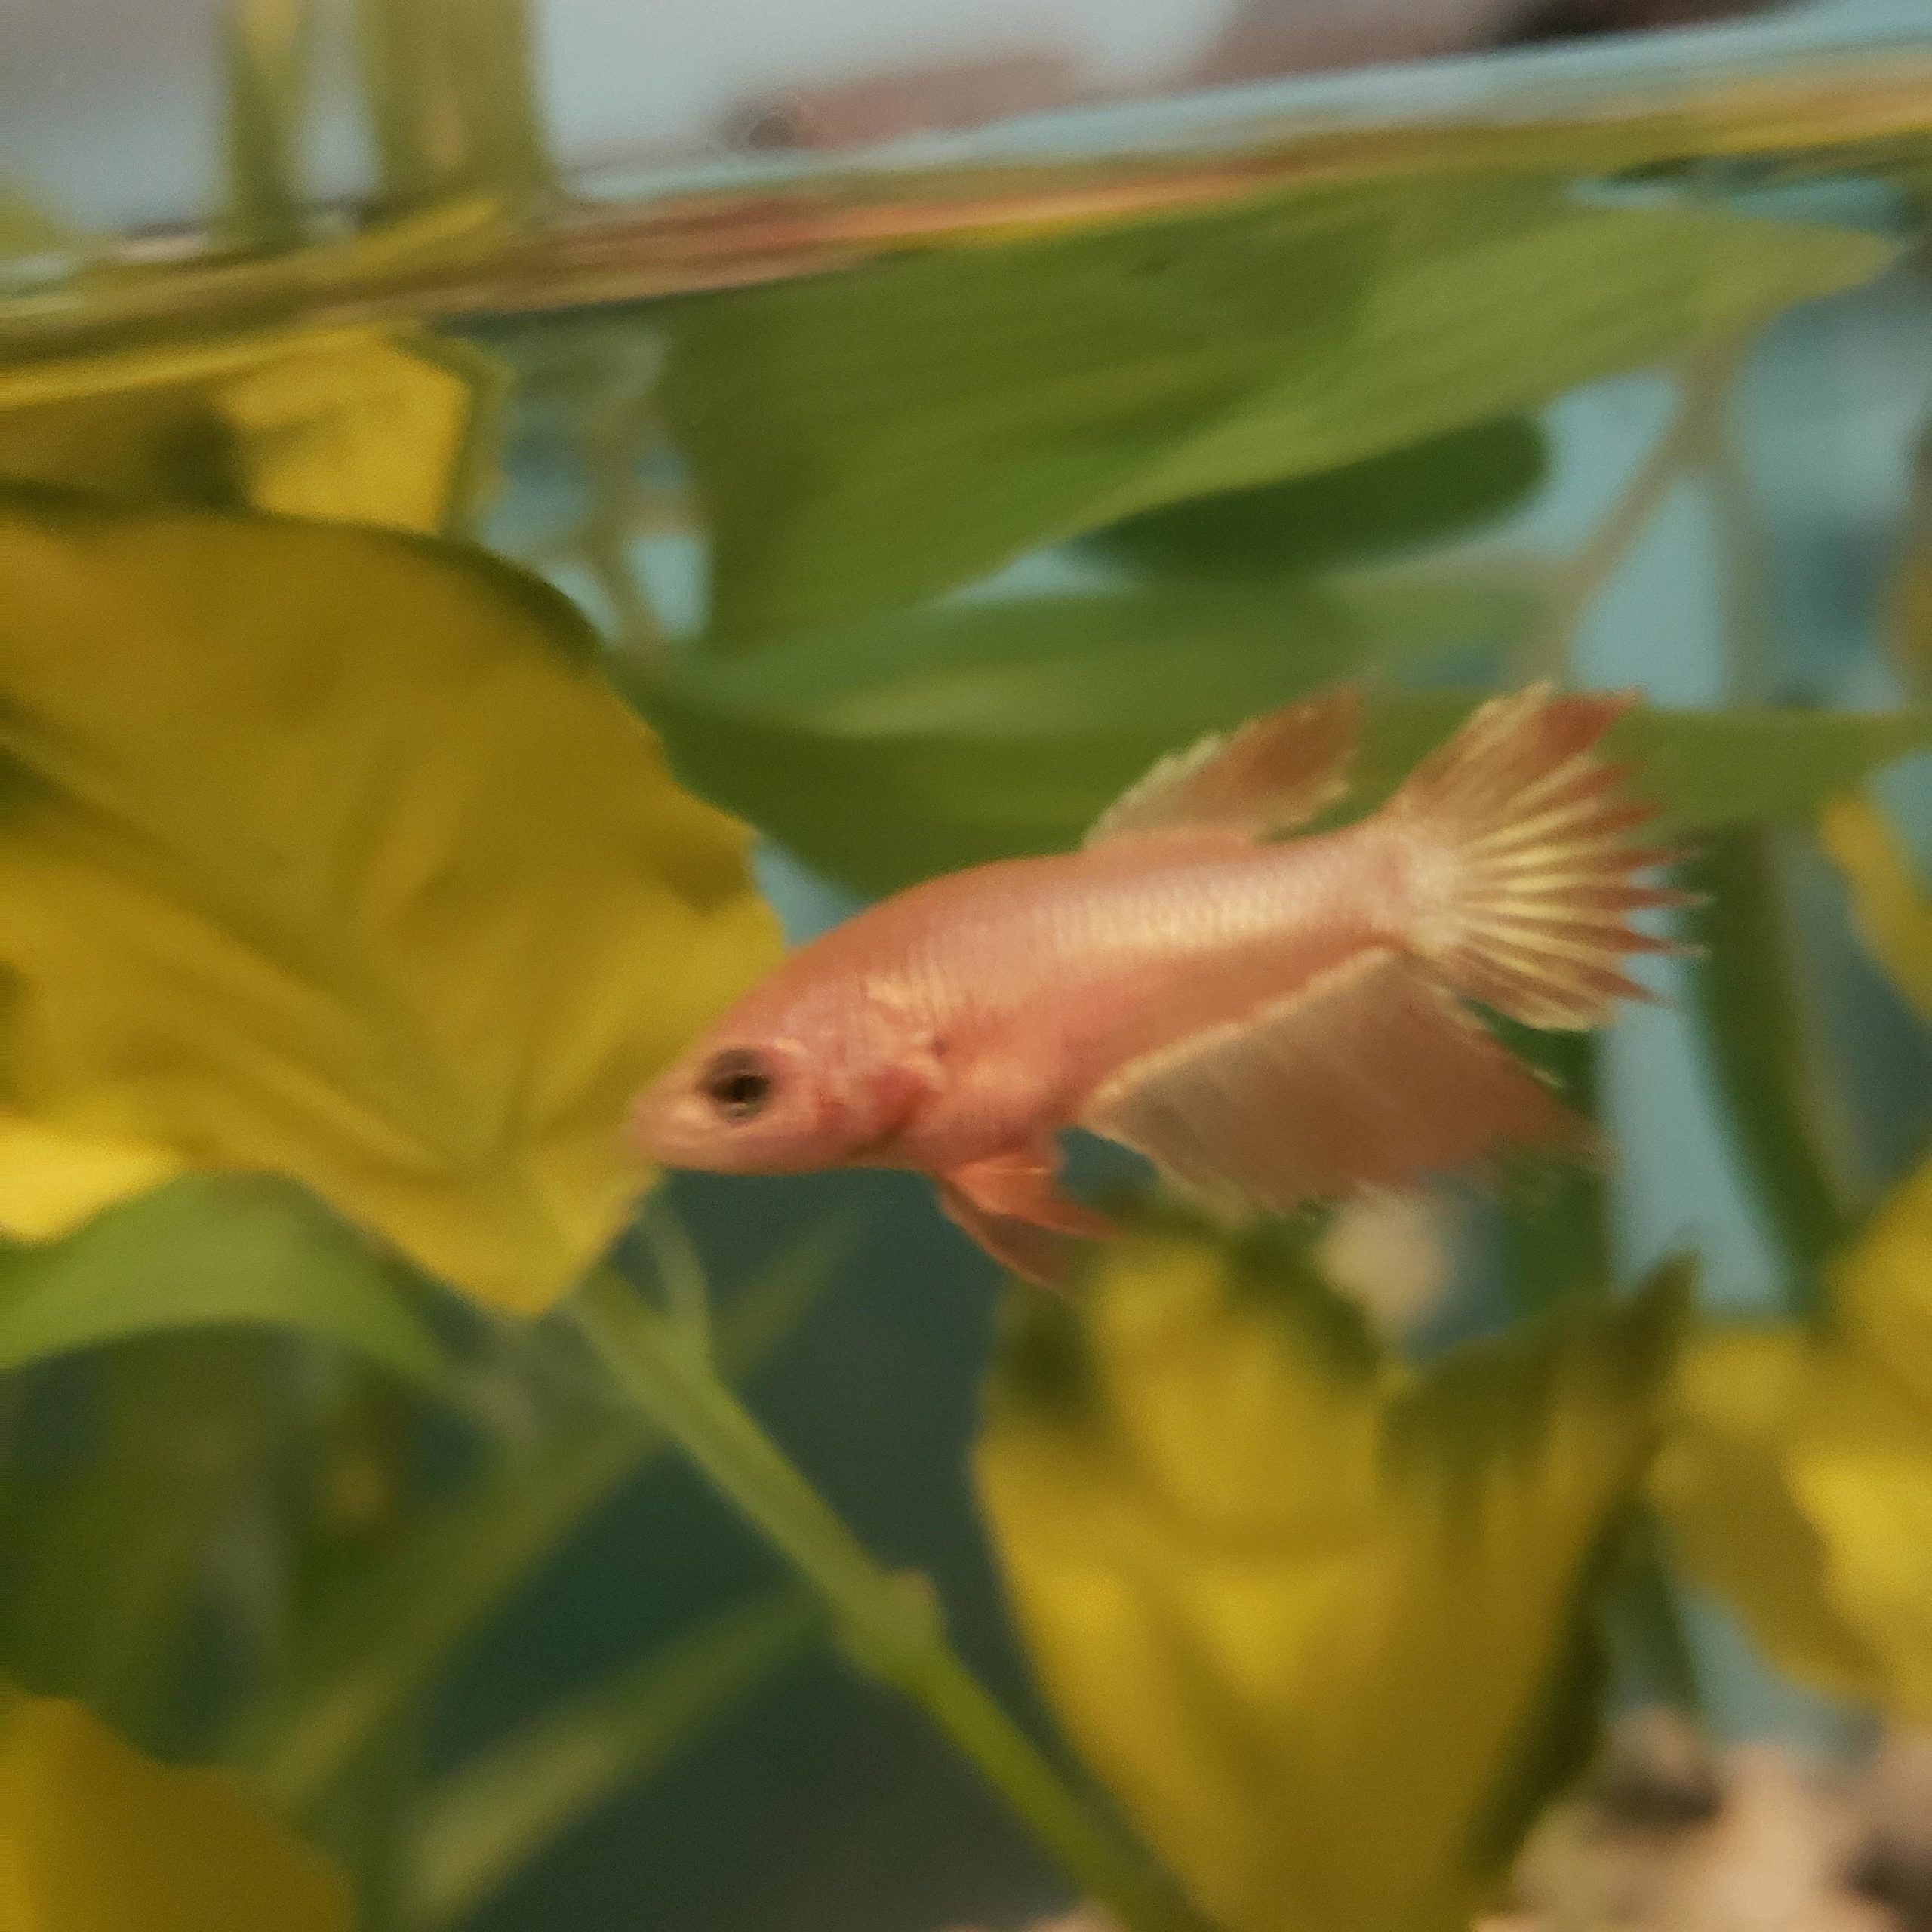 Betta Fish Baby Betta Tail Type They Re Supposed To Be A Crowntail But Curious If It Might Be A Surprise Baby Betta Fish Betta Fish Betta